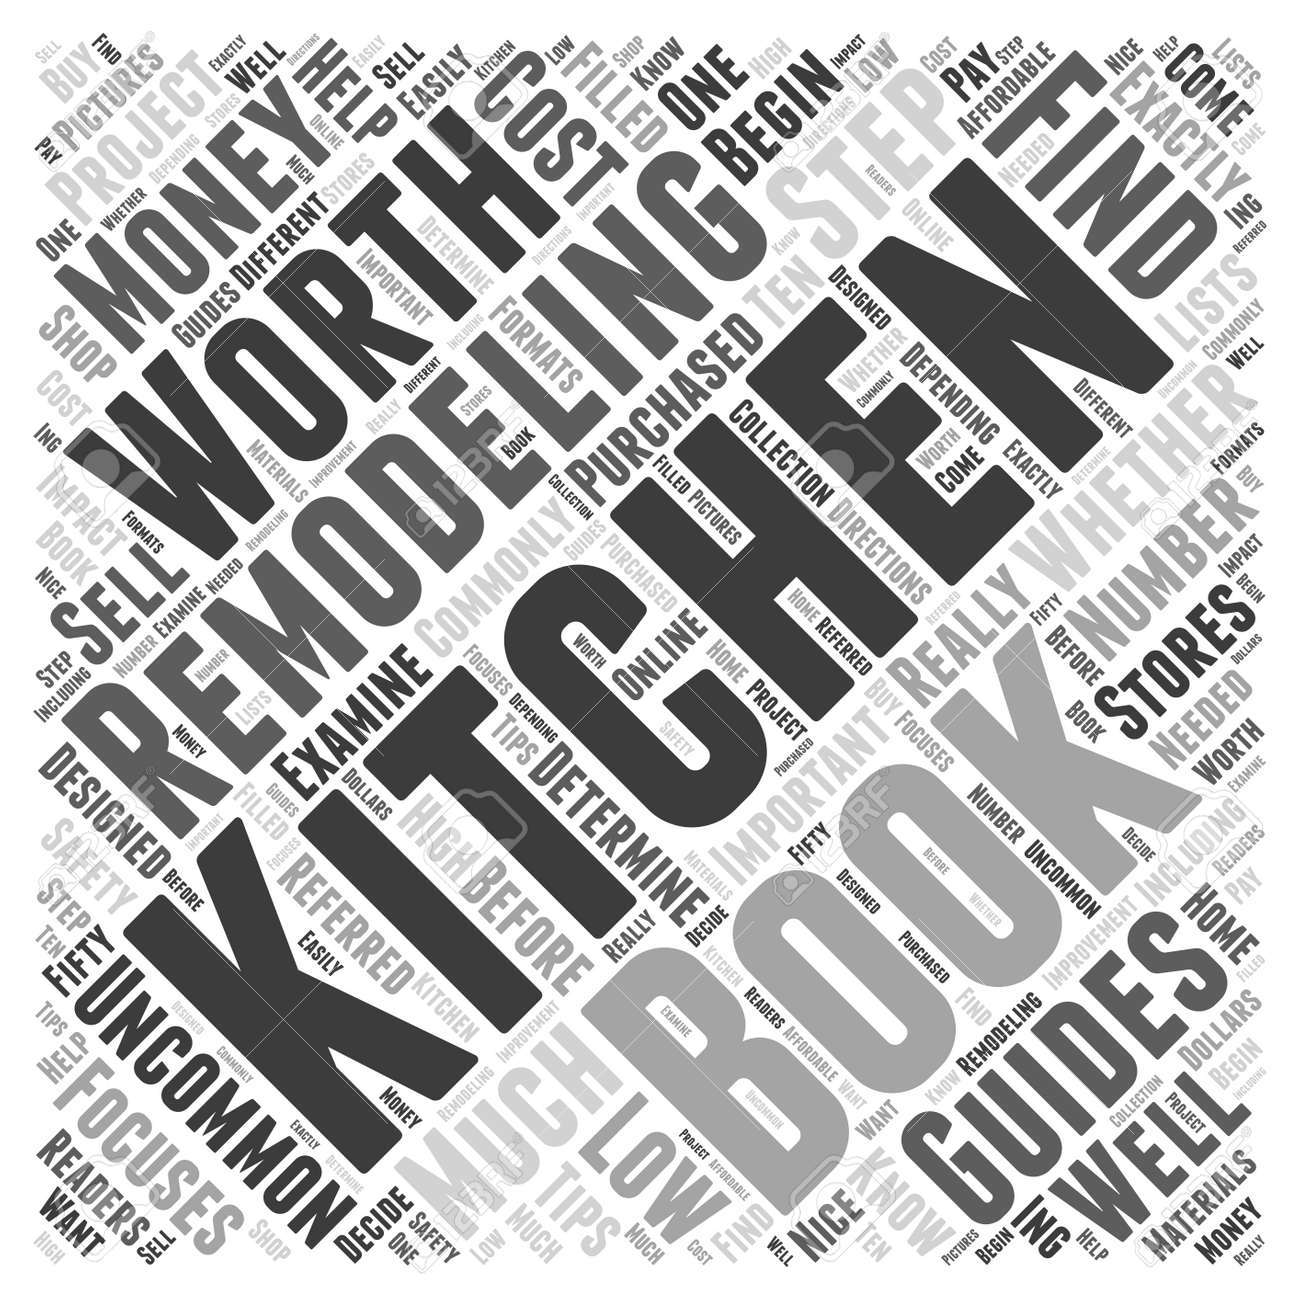 kitchen remodeling books worth the money word cloud concept royalty